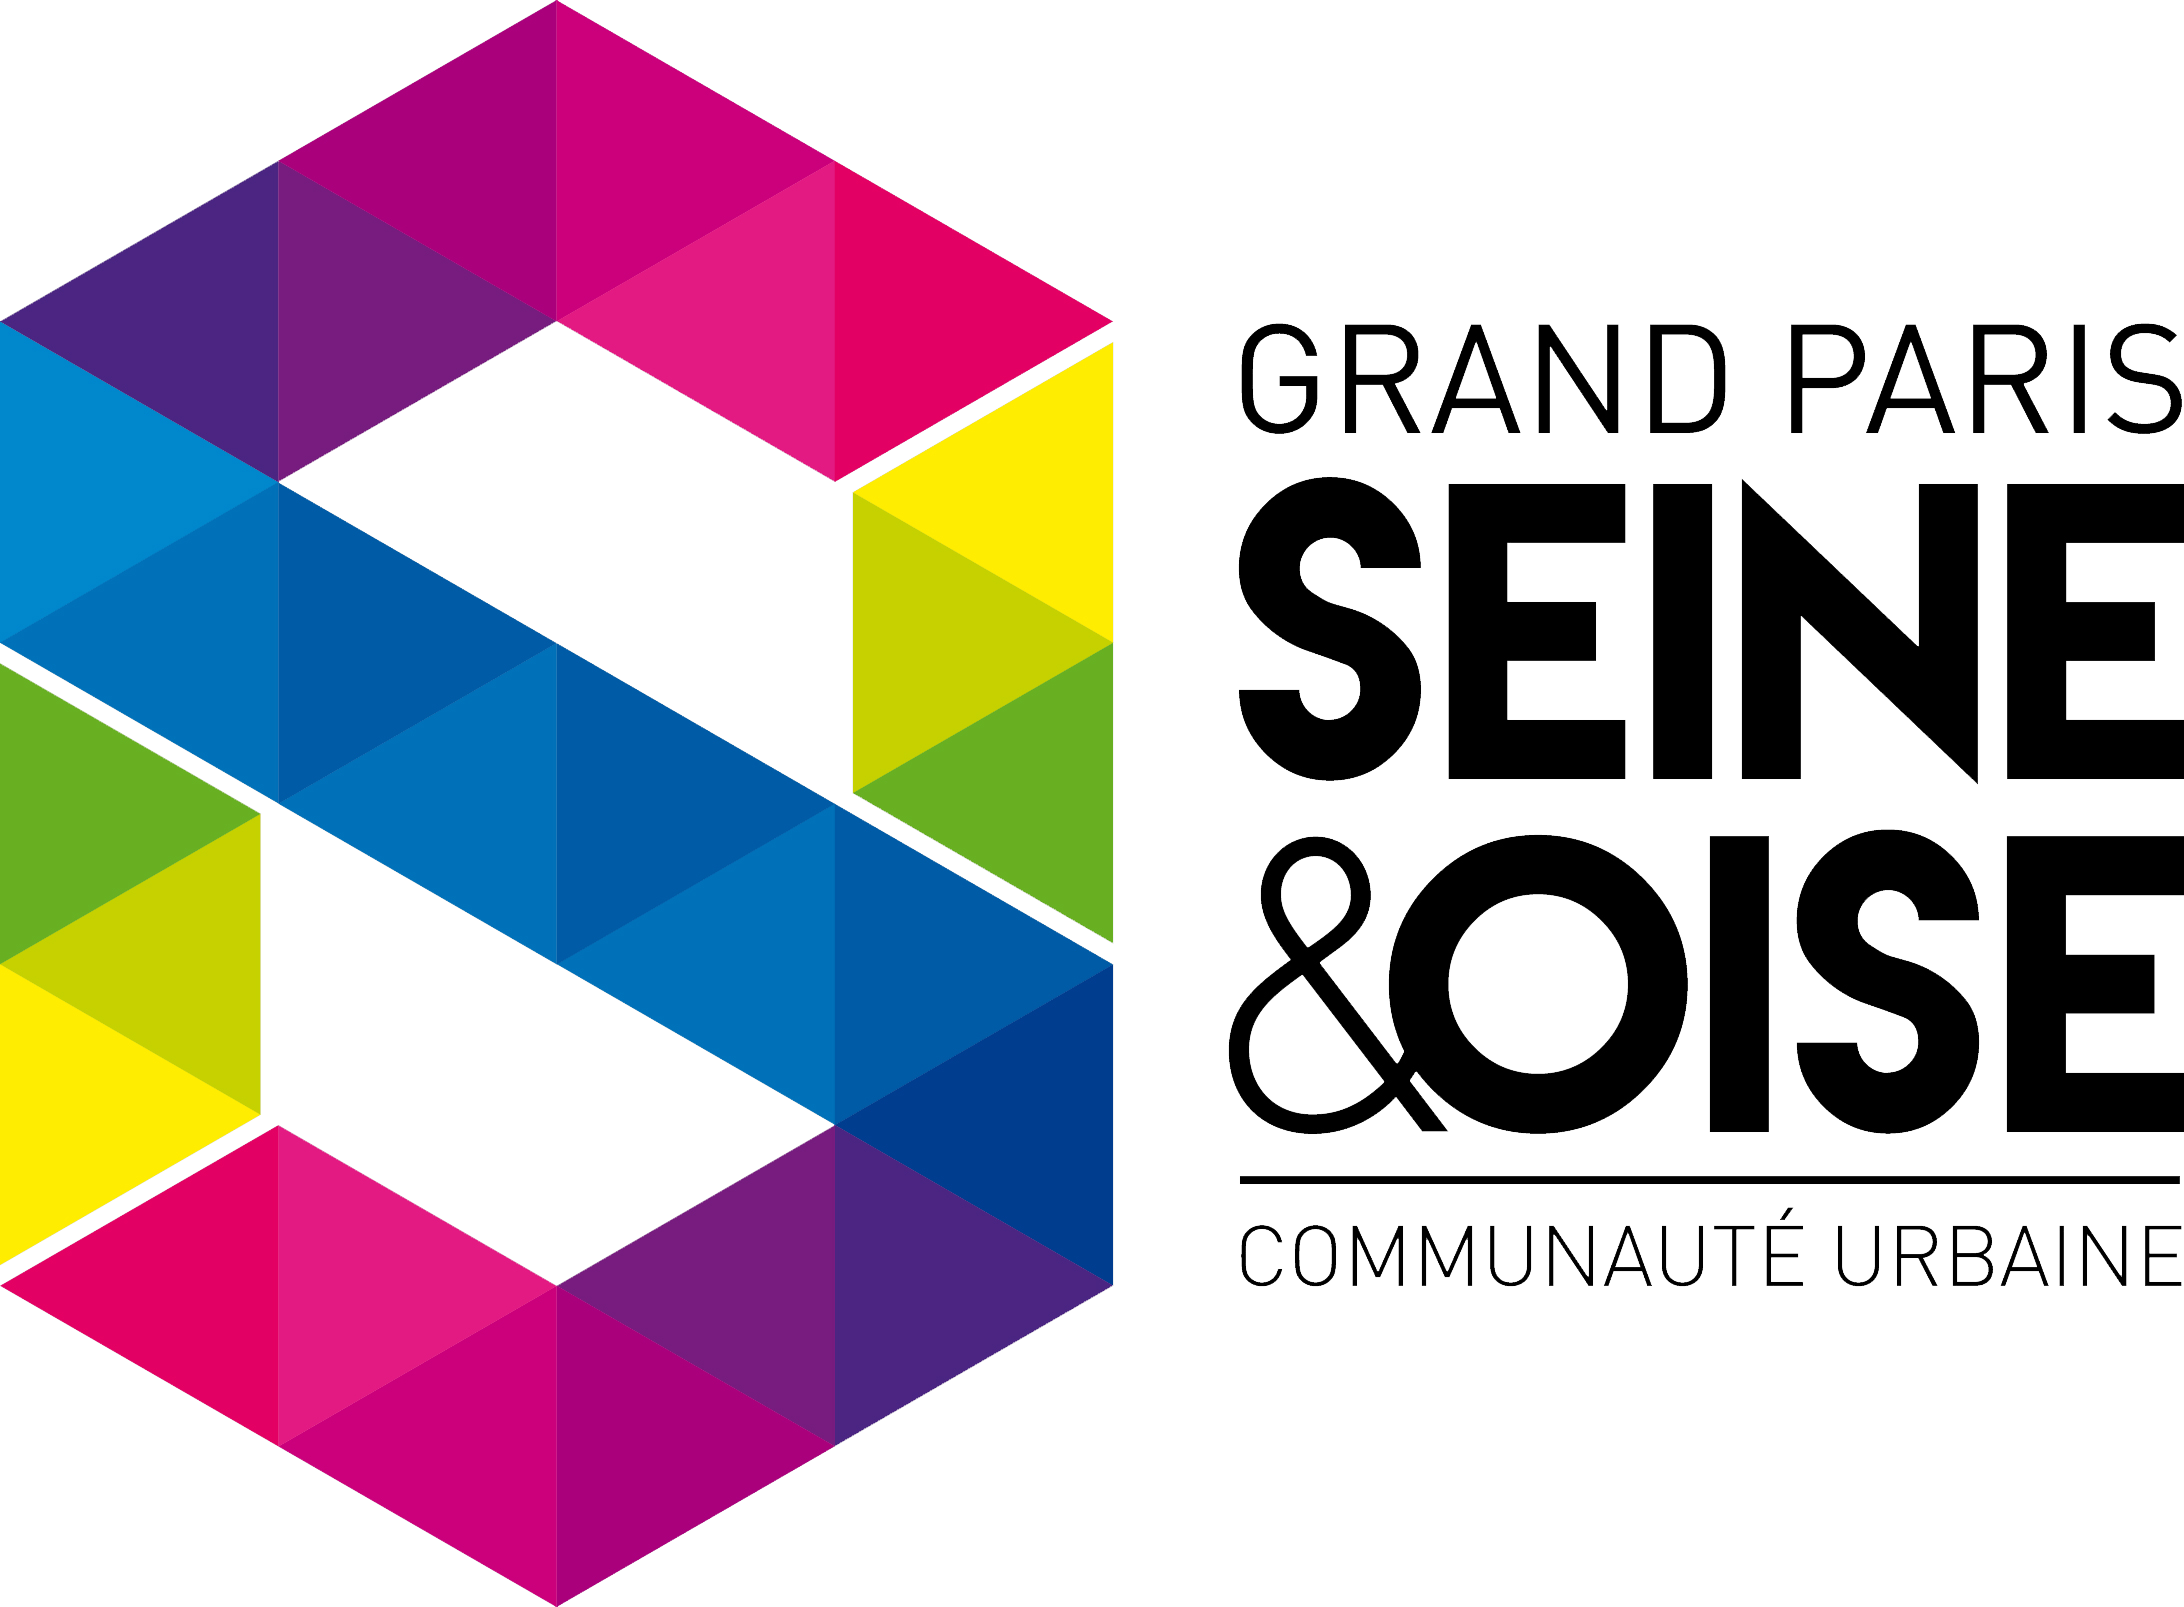 Logo Grand_paris_seine_et_oise